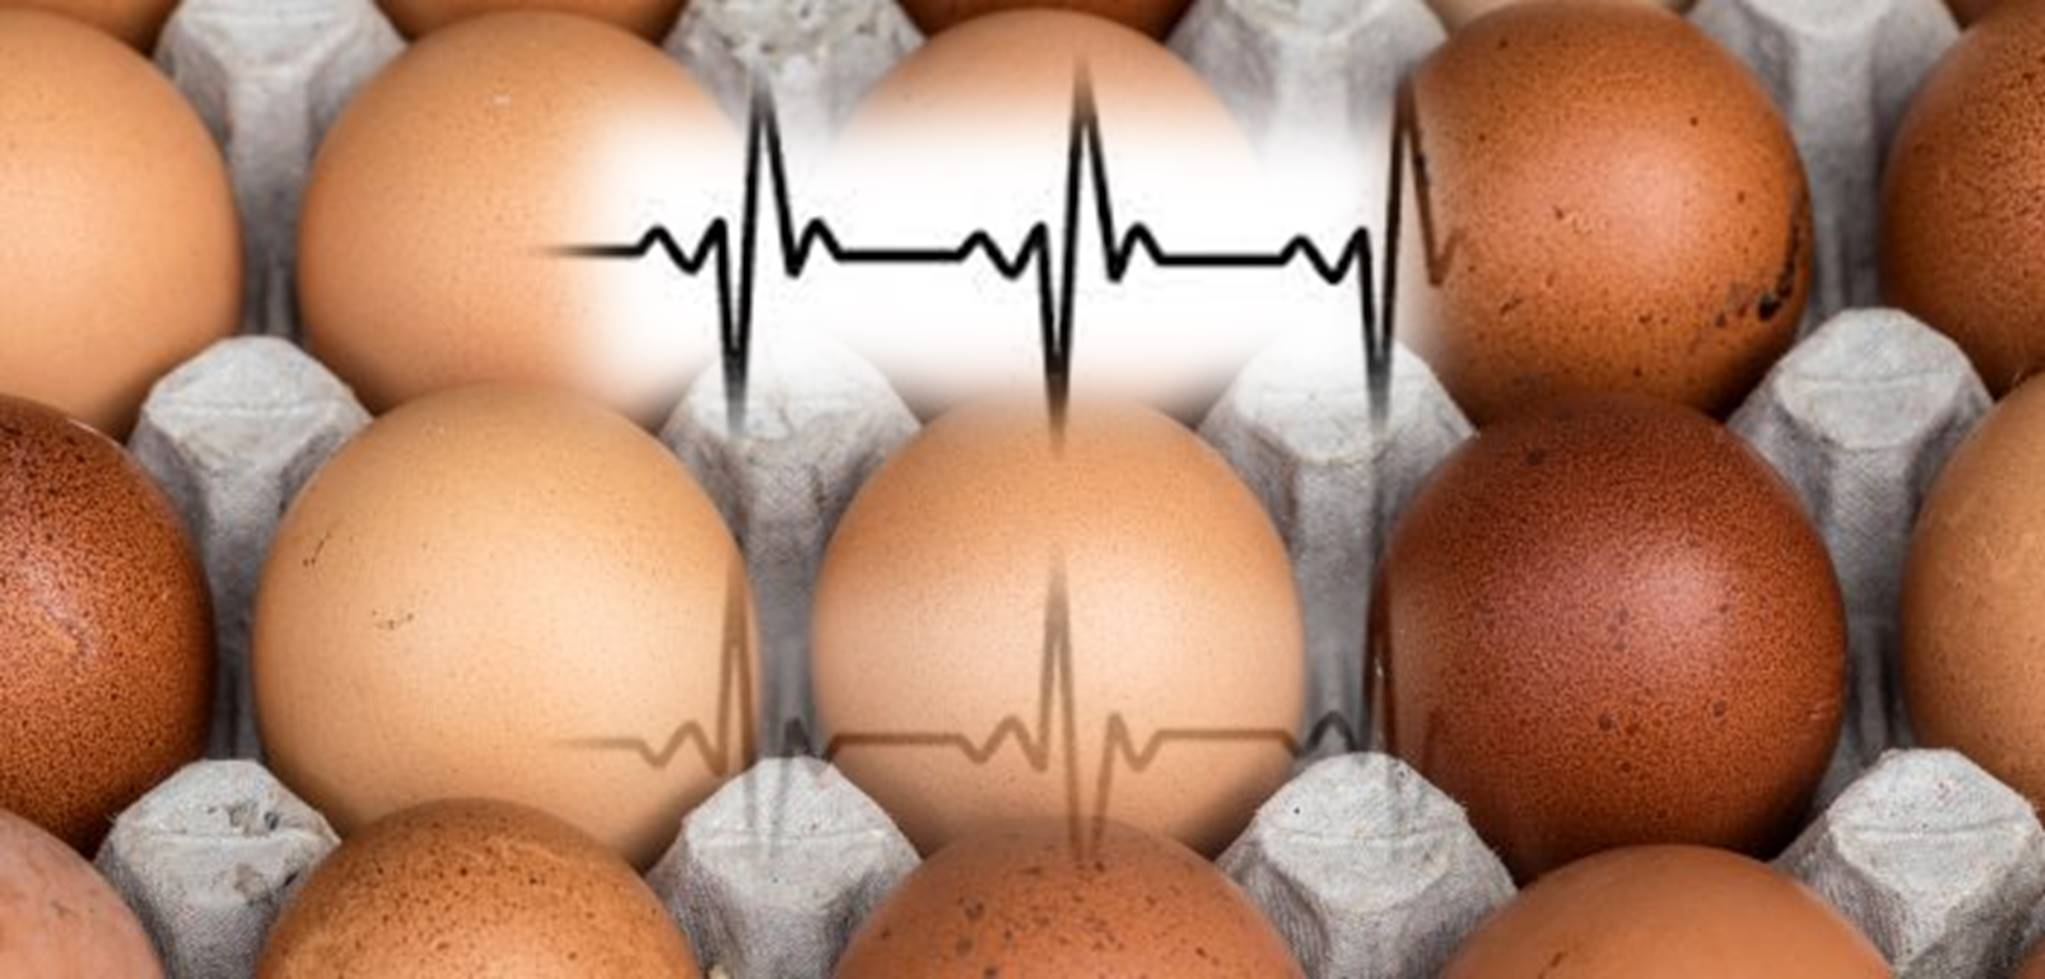 Eating Eggs and Cholesterol Linked to Heart Disease and Death Risk